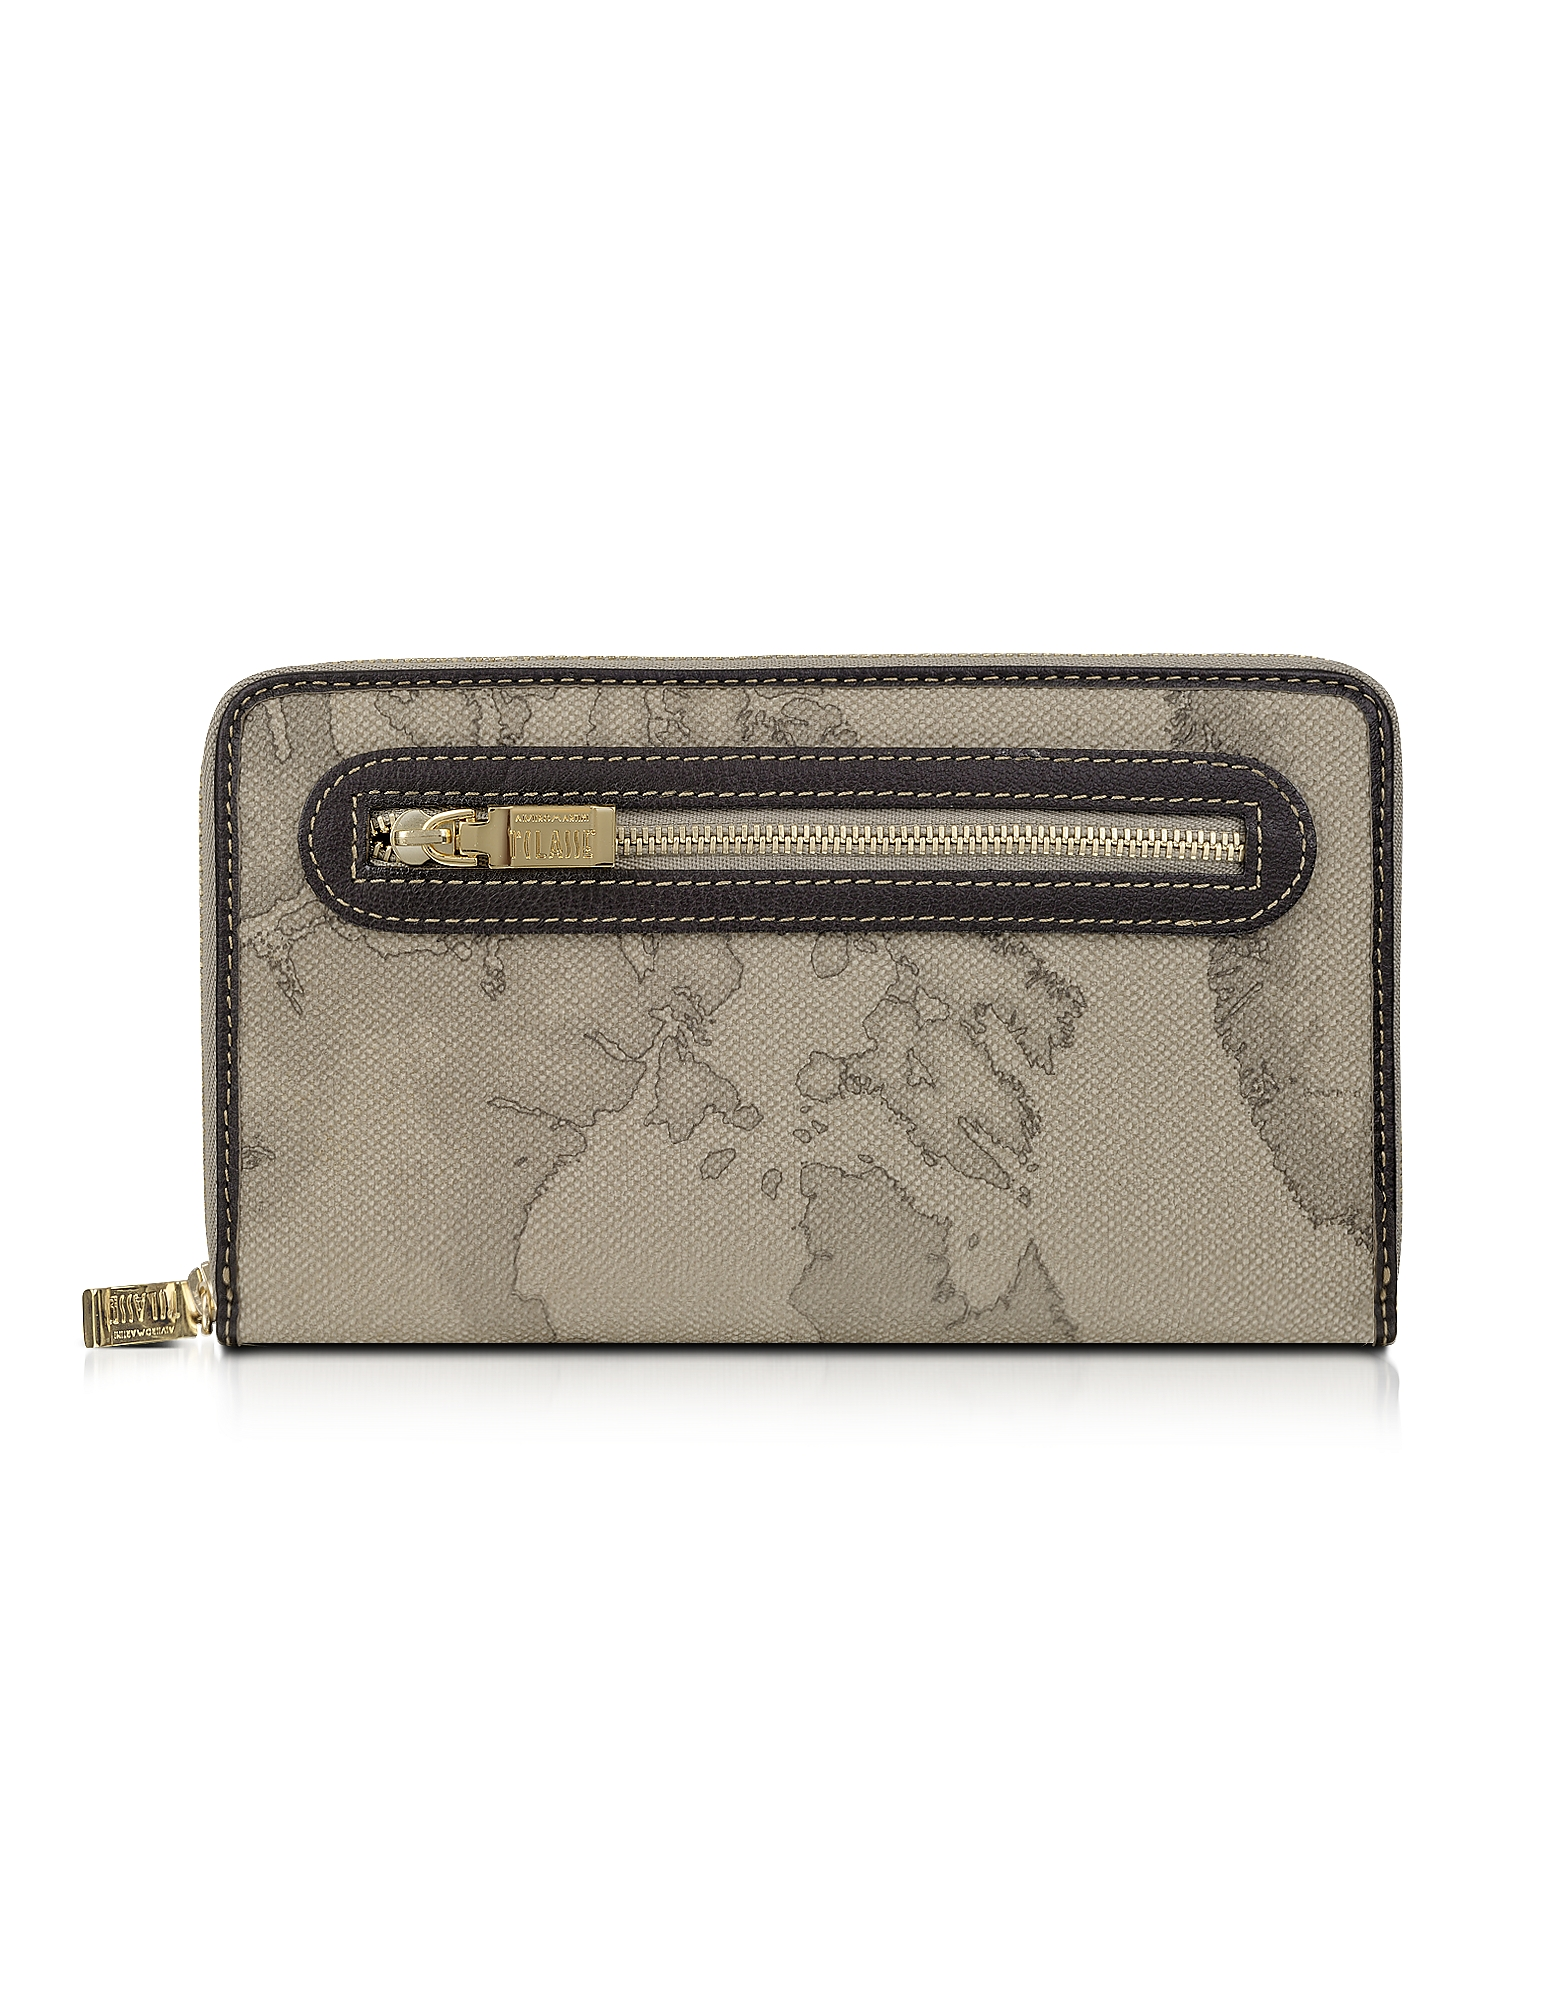 Alviero Martini 1A Classe Wallets, Geo Print Zip Around Wallet